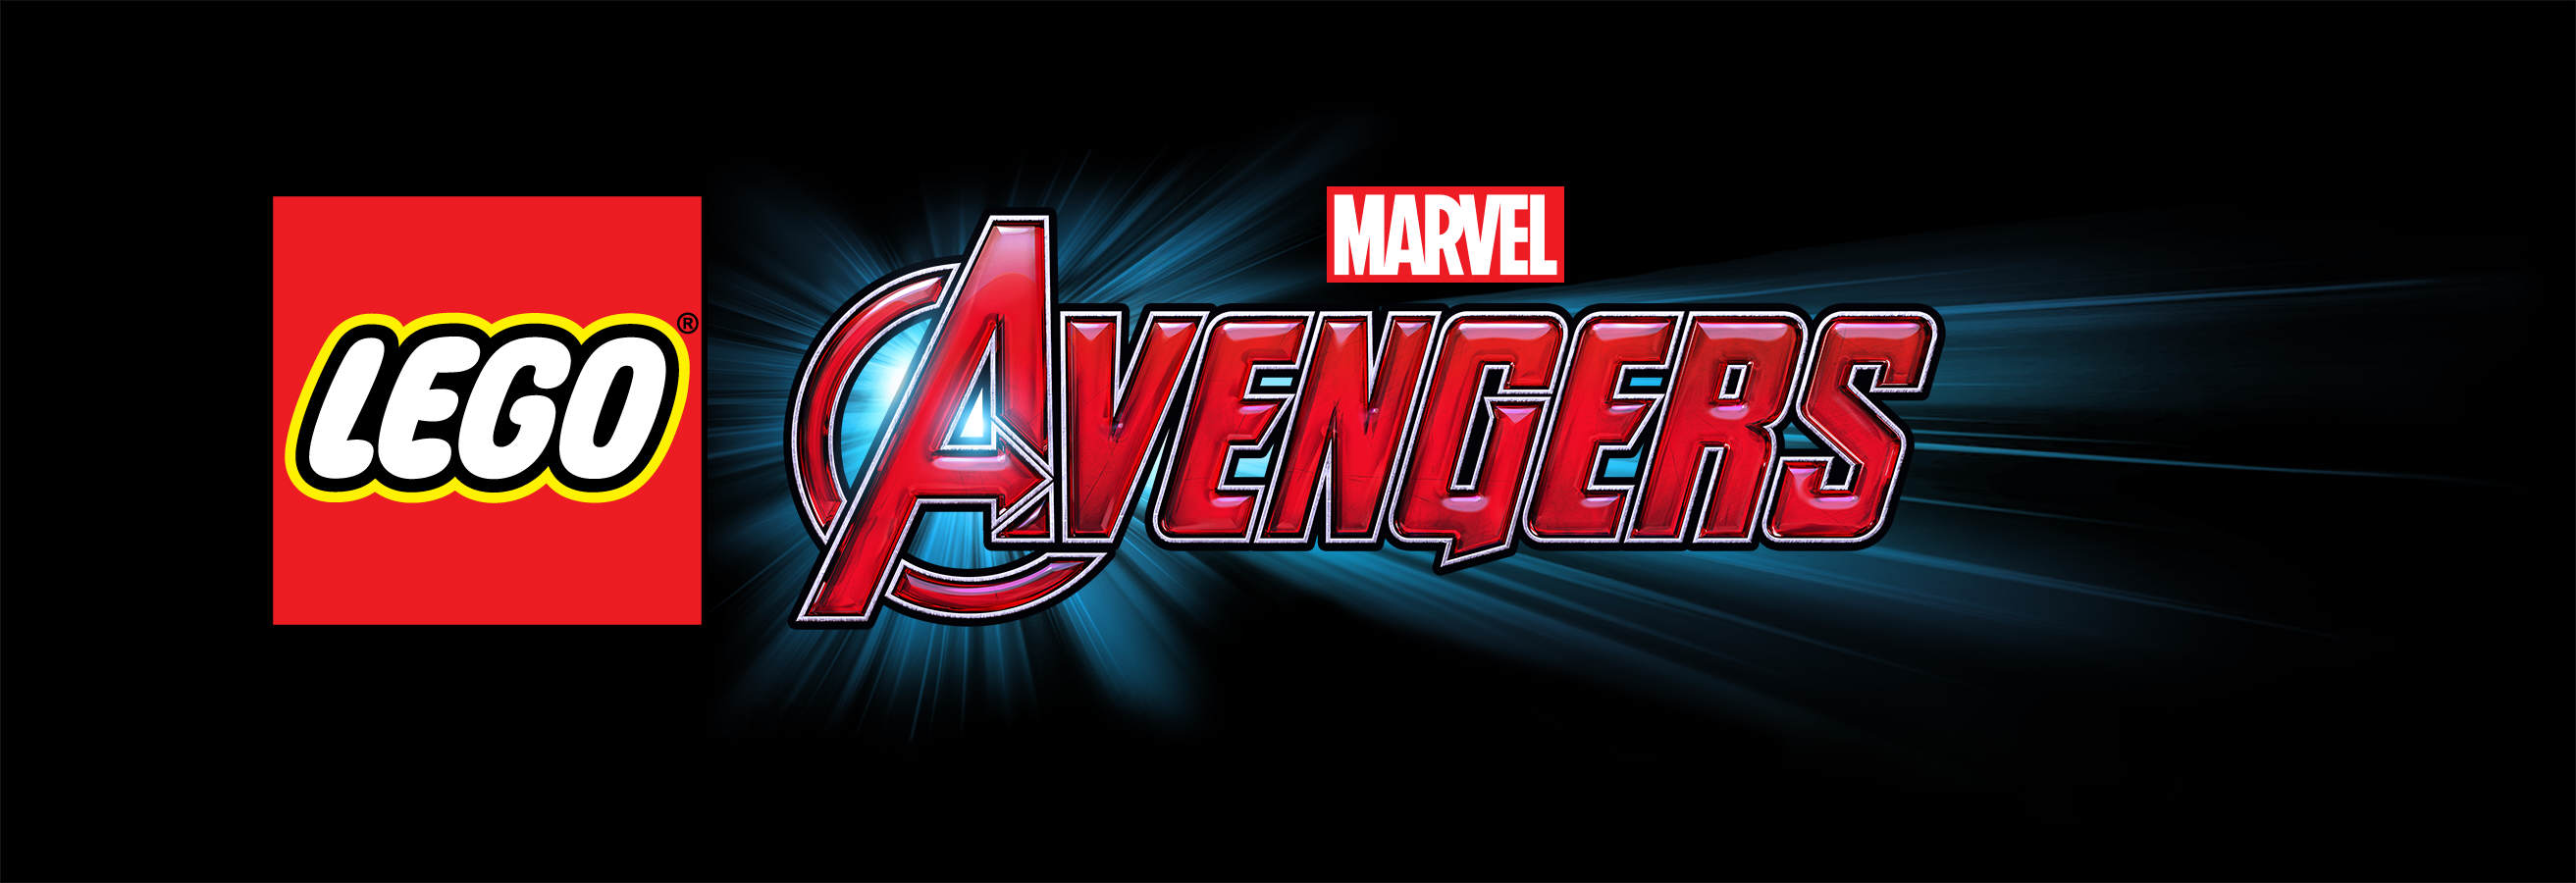 Review: LEGO Marvel's Avengers LEGO Marvel Avengers Logo RGB on black